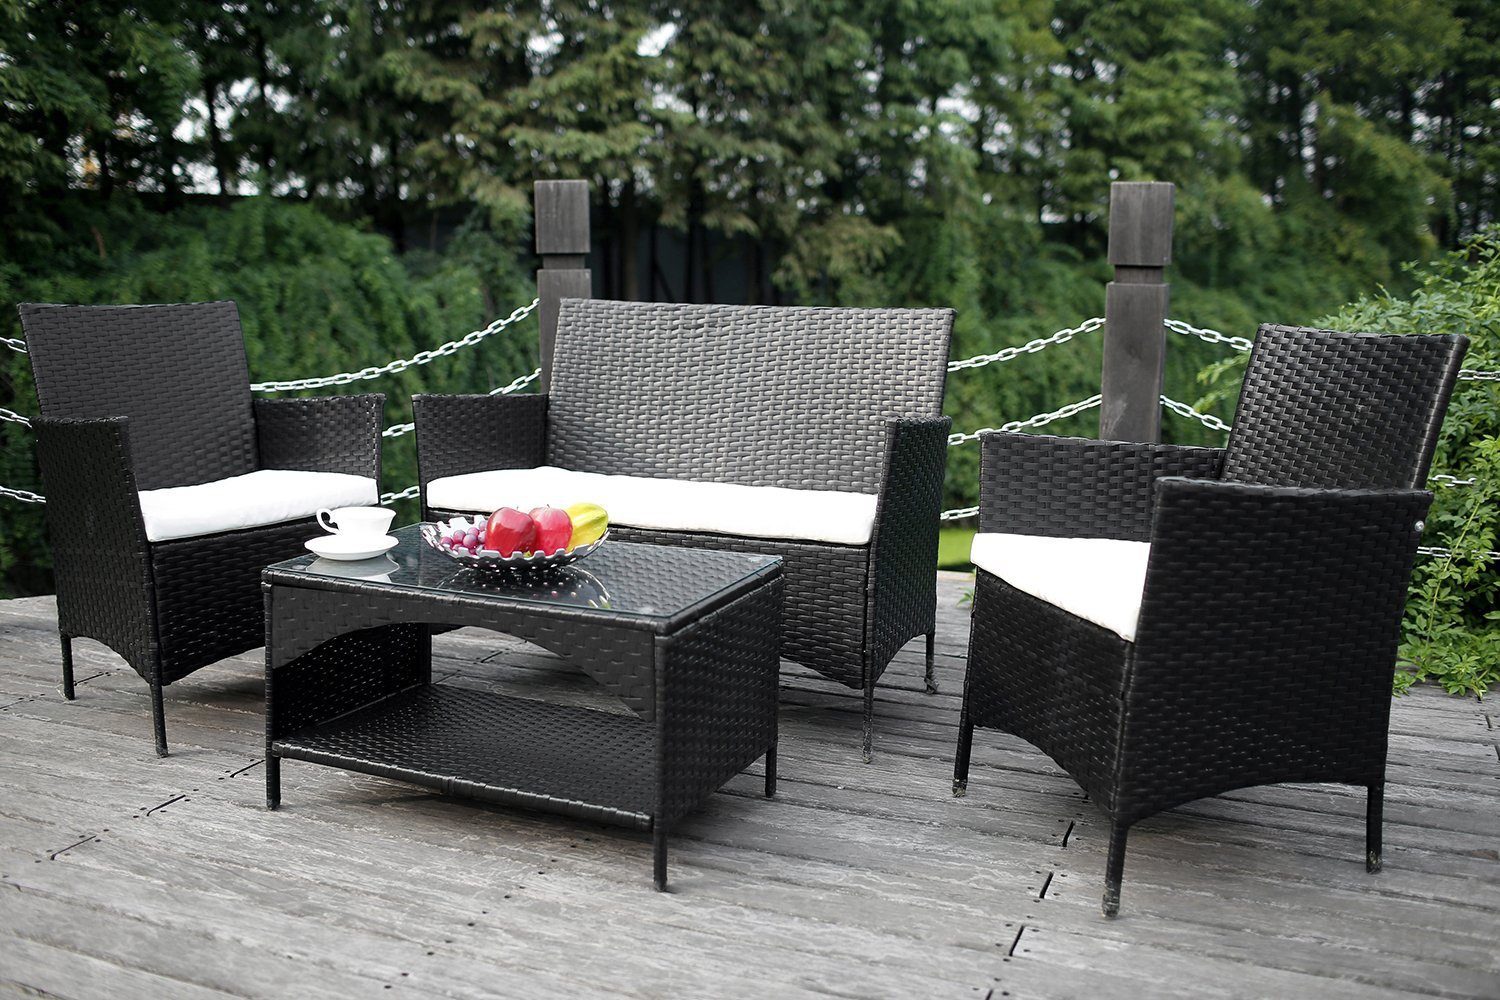 Amazon.com: Merax 4 Piece Outdoor Patio PE Rattan Wicker Garden Lawn ...